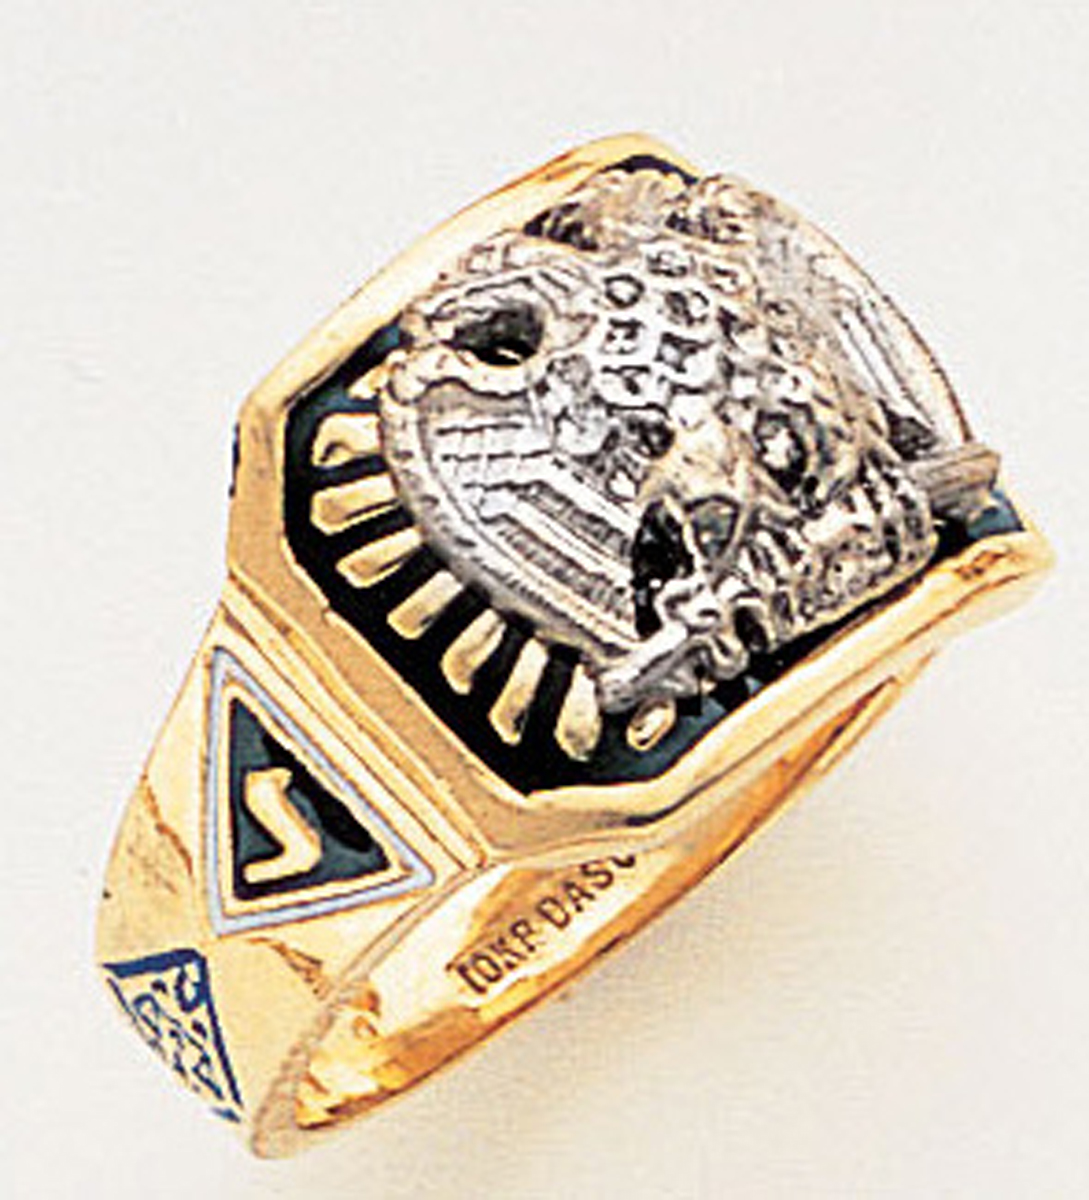 Masonic 32 Degree Scottish Rite Ring Macoy Publishing Masonic Supply 3369